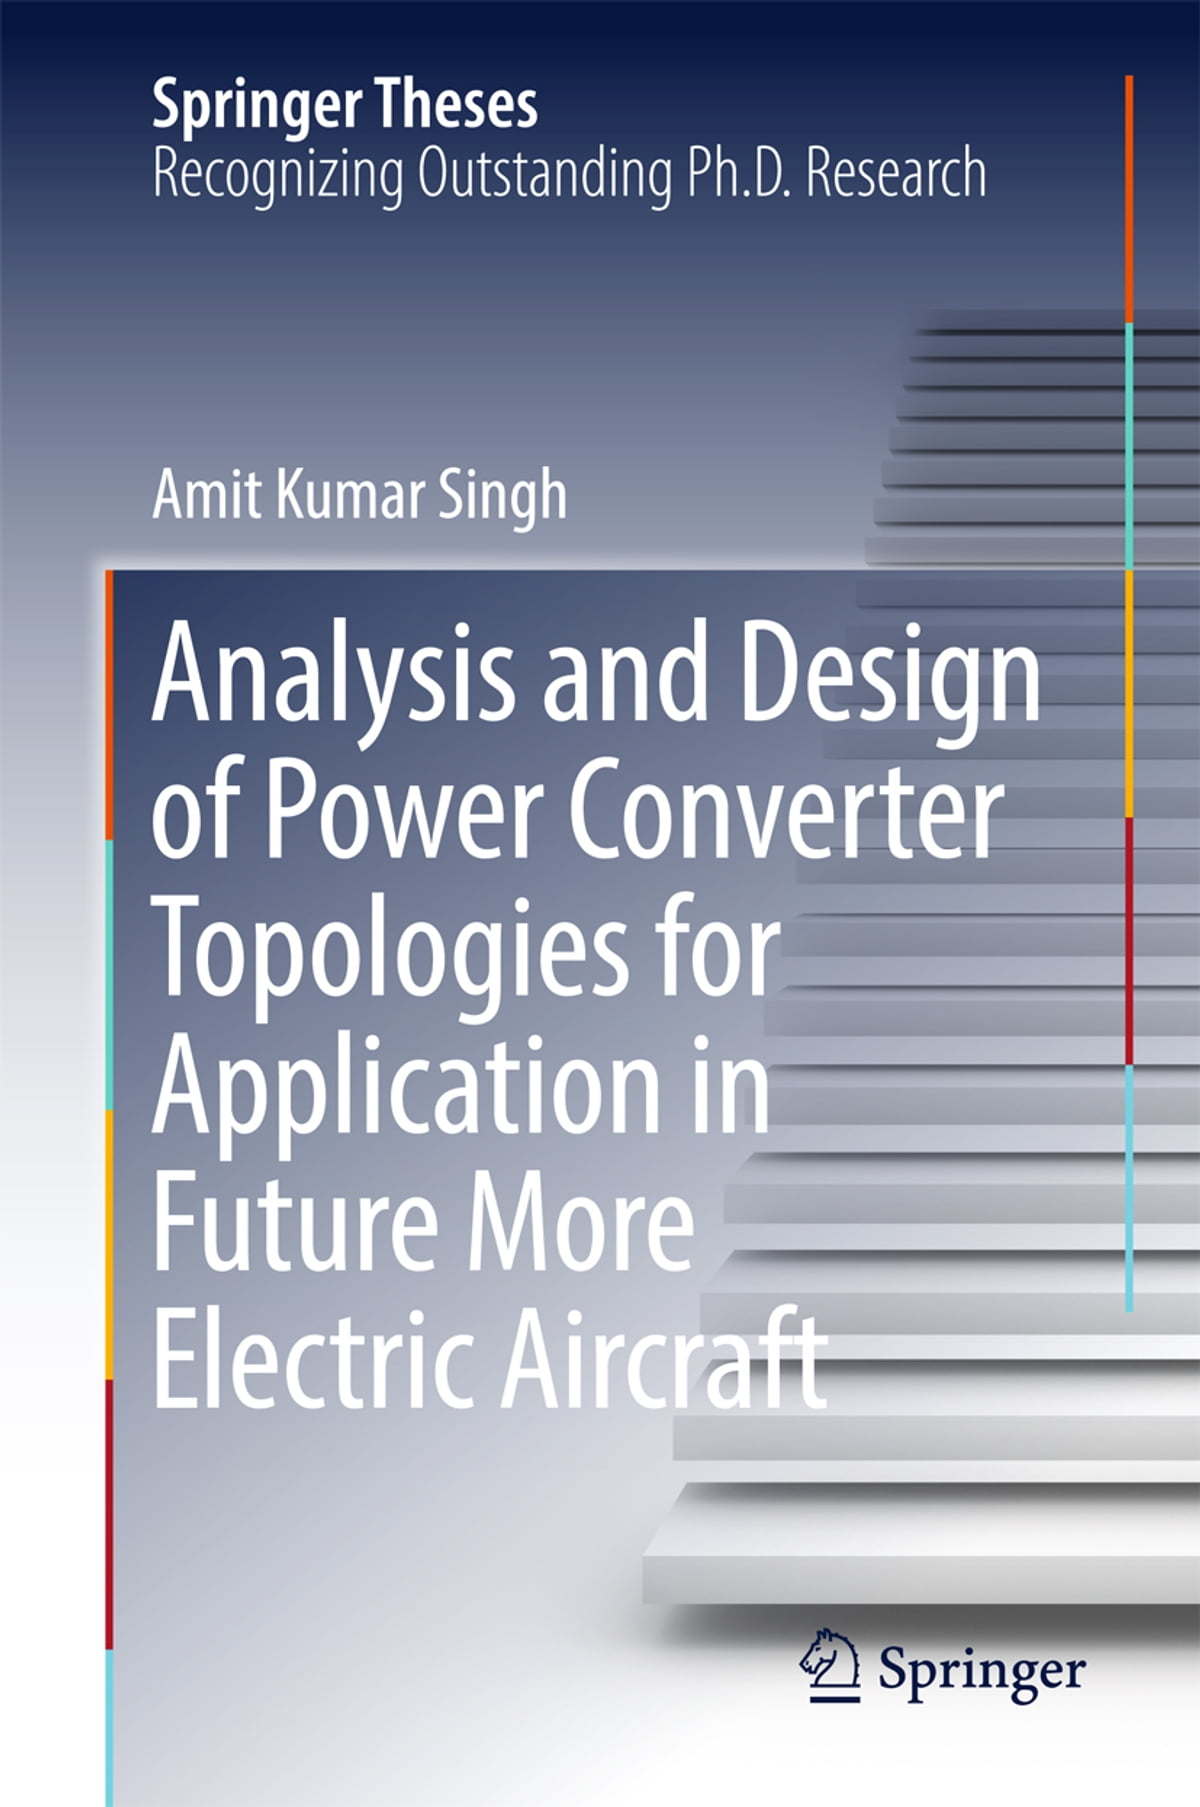 Analysis And Design Of Power Converter Topologies For Application In Future More Electric Aircraft Ebook By Amit Kumar Singh 9789811082139 Rakuten Kobo